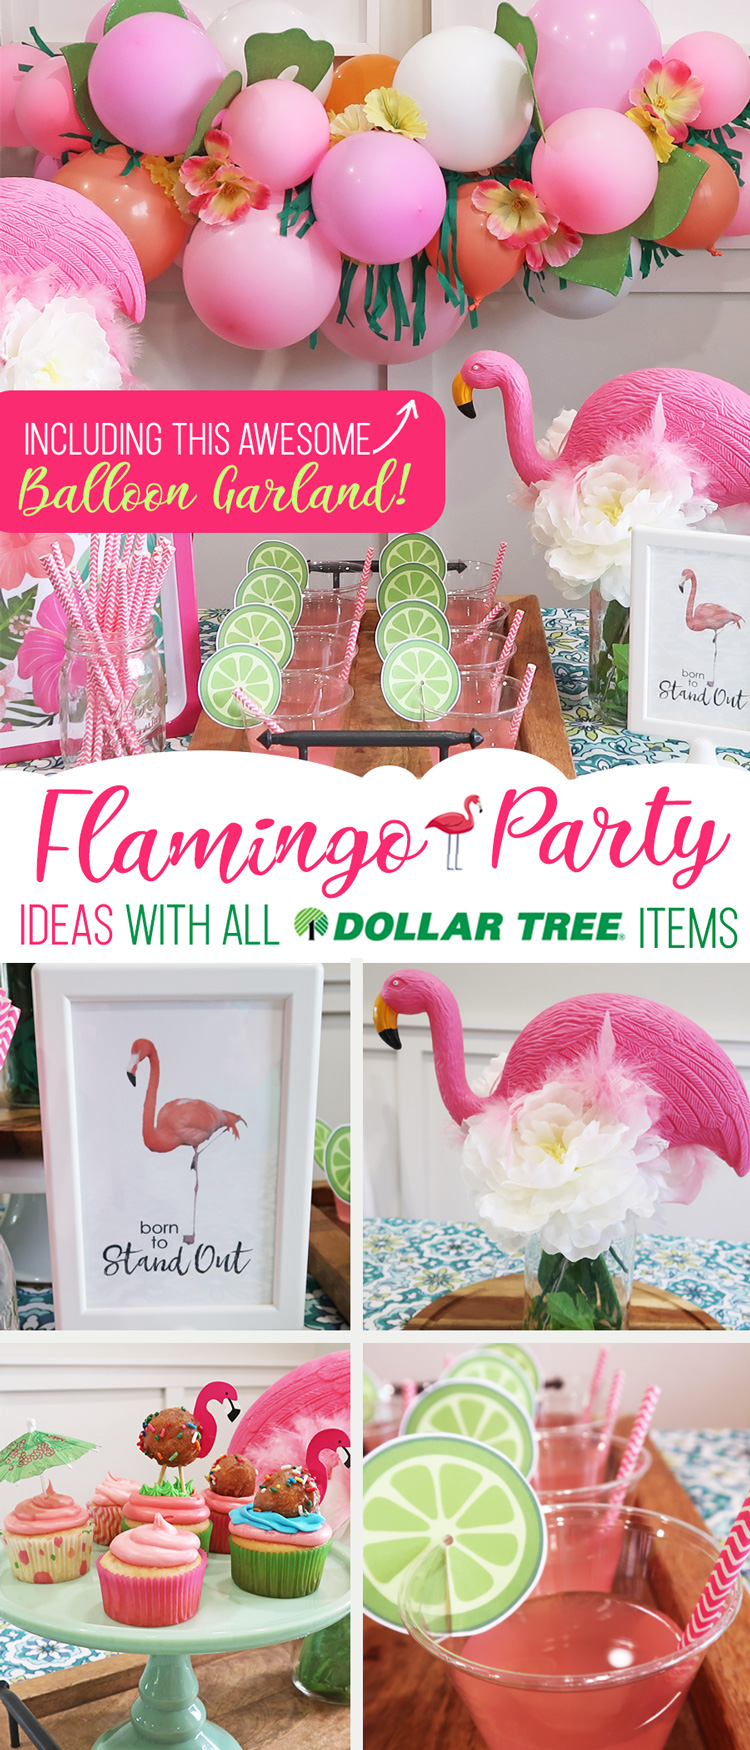 Cheap but TASTEFUL Flamingo Party Decoration Ideas, using ALL items from the Dollar Tree! We hosted a beautiful Flamingo Baby Shower for my sister that didn't break the bank!!! Everyone LOVED the flamingo theme and especially the DIY Tropical Balloon Garland, Flamingo cupcake toppers and FREE printable, too! #flamingo #party #decoration #ideas #cupcake #topper #free #printable #cheap #easy #baby #shower #bridal #kids